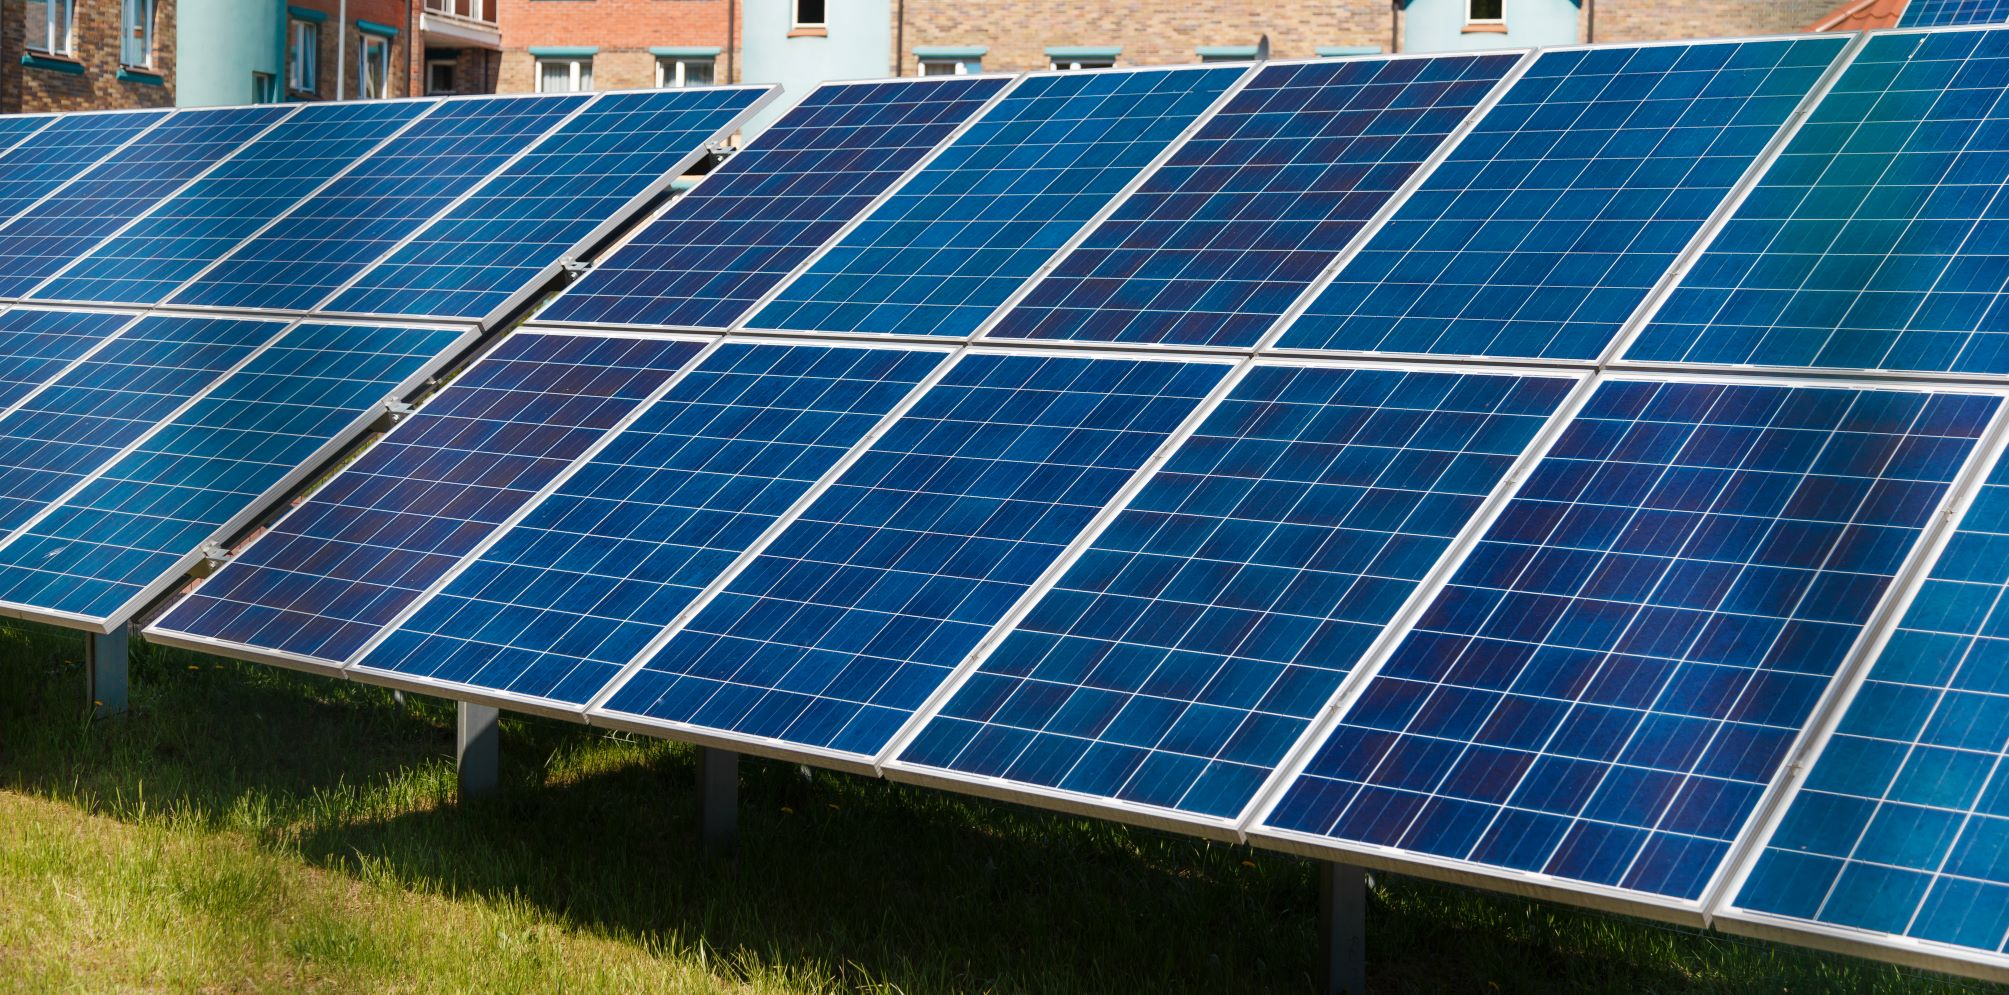 5 Of The Most Popular Renewable Energy Sources